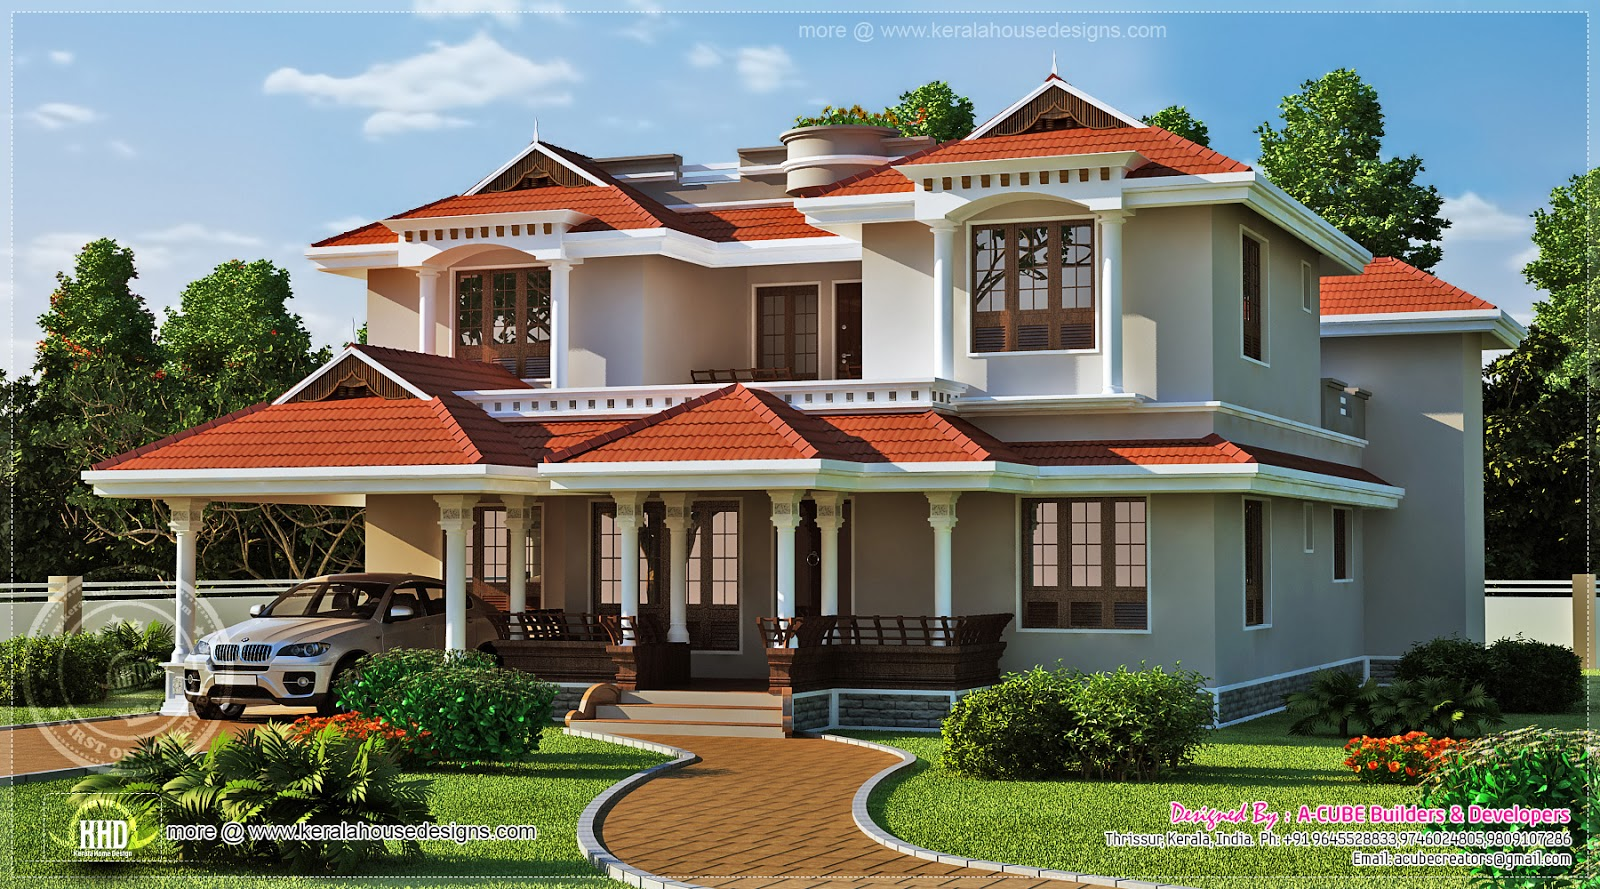 Beautiful home exterior in 2446 square feet house design for Beautiful house designs pictures